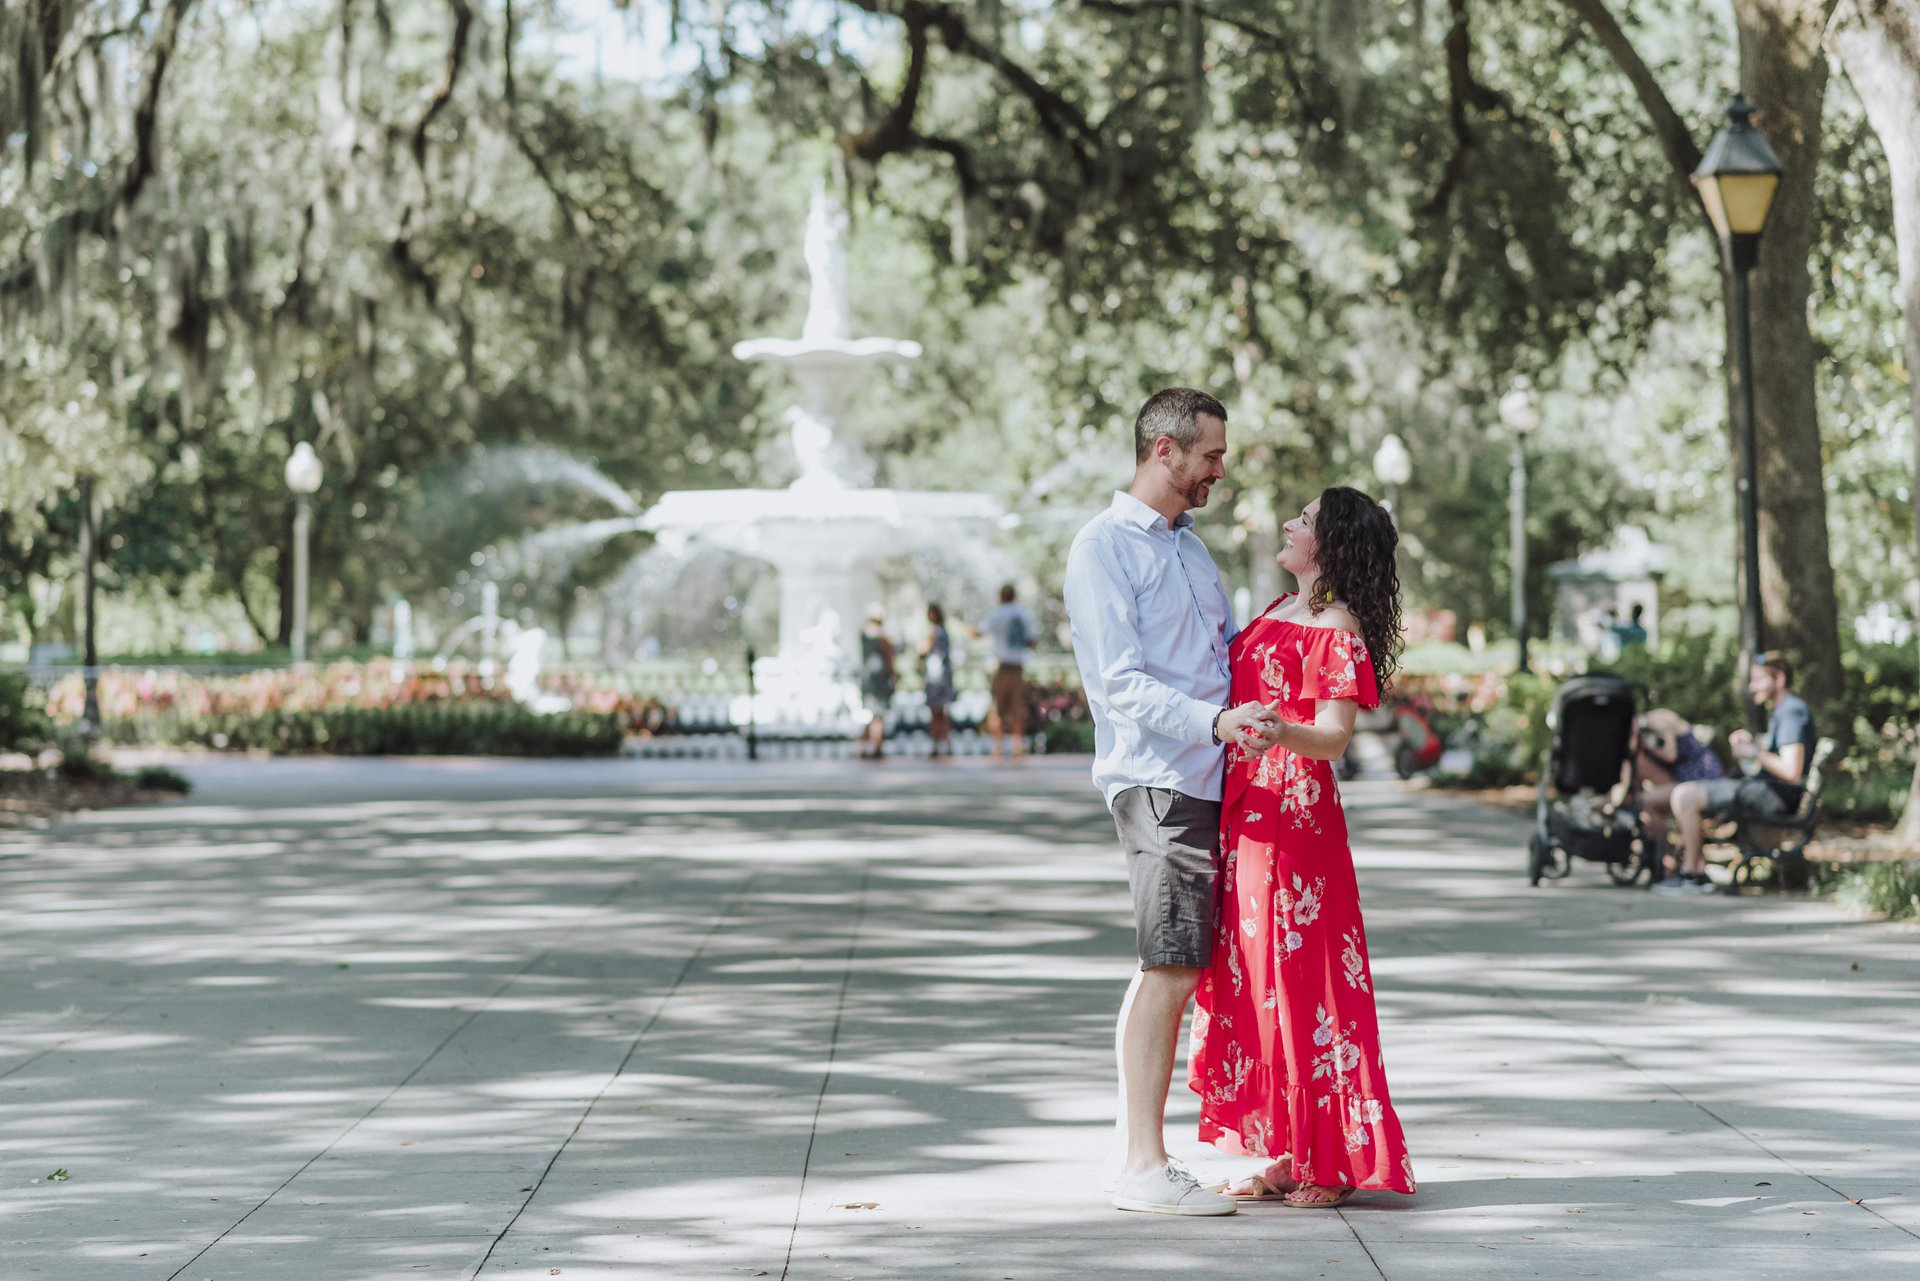 Flytographer Travel Story - Honeymoon Revisited